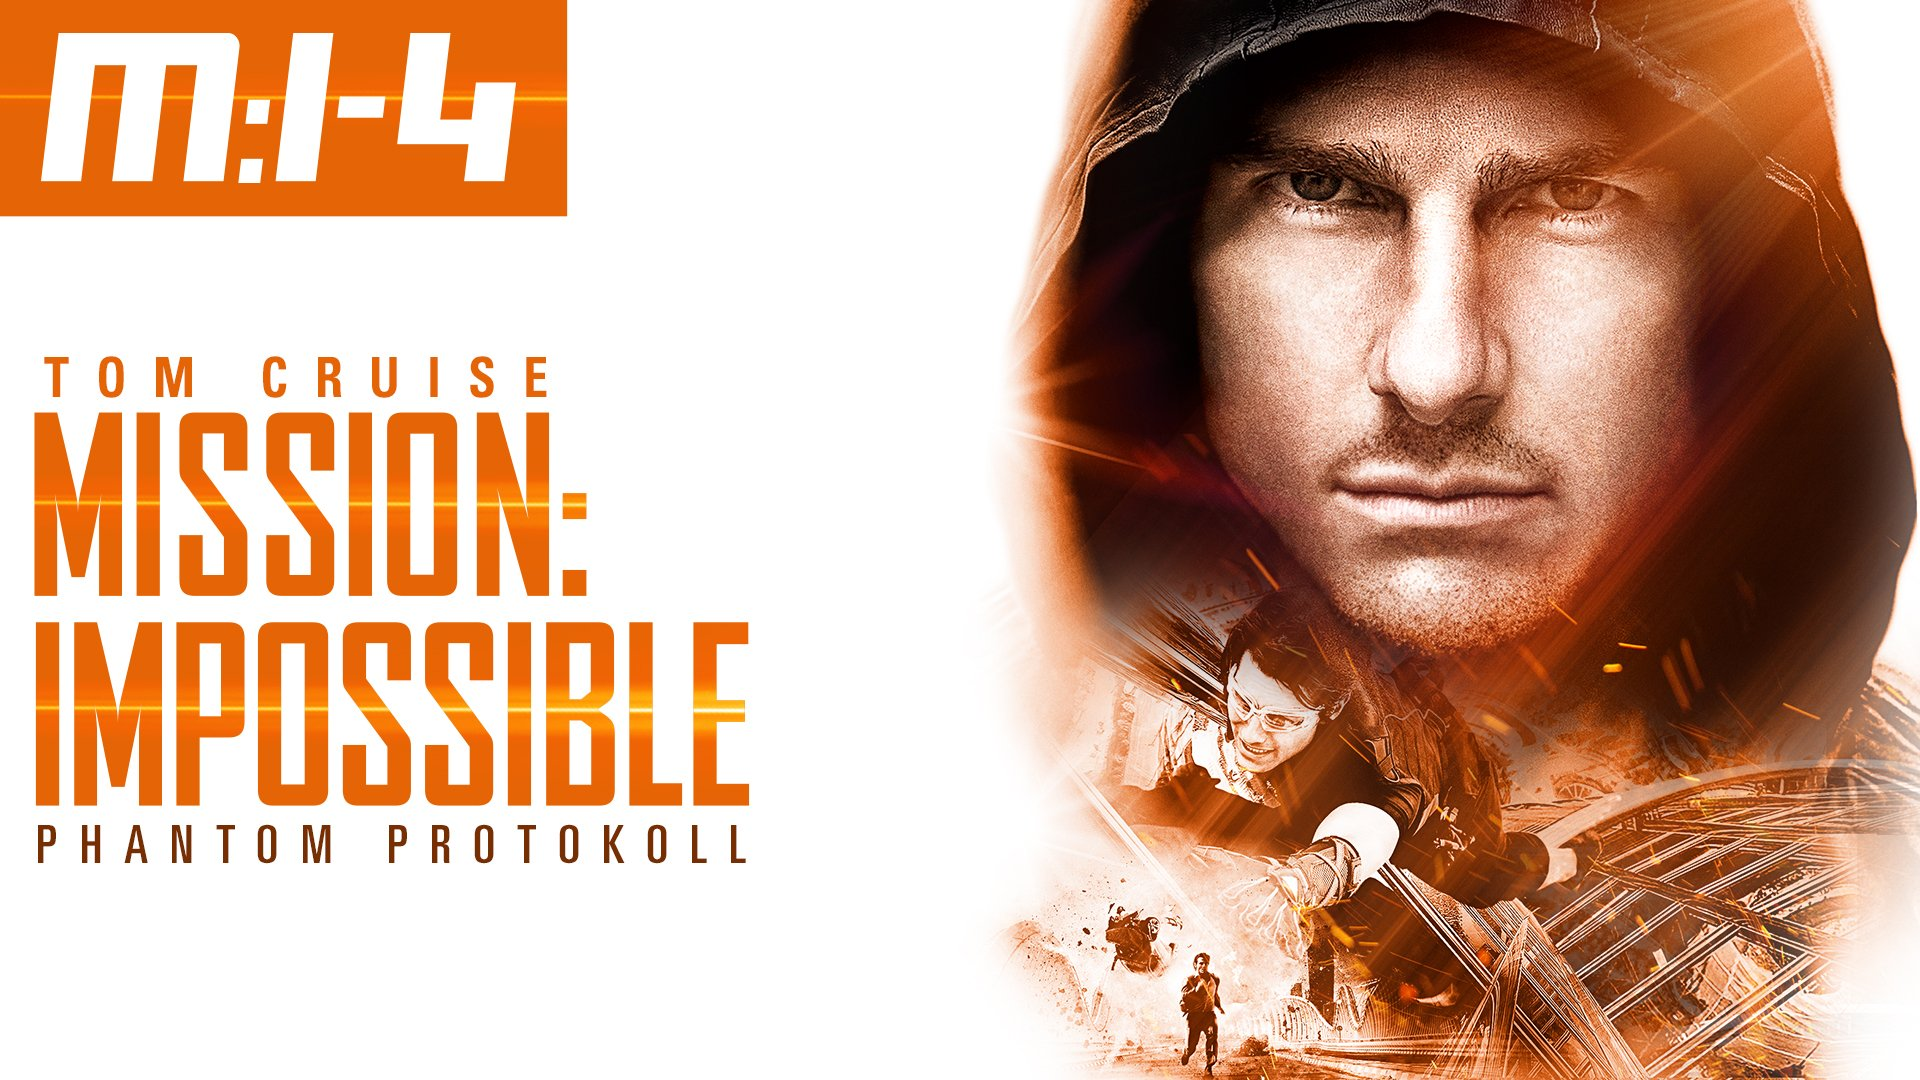 Mission: Impossible - Phantom Protokoll